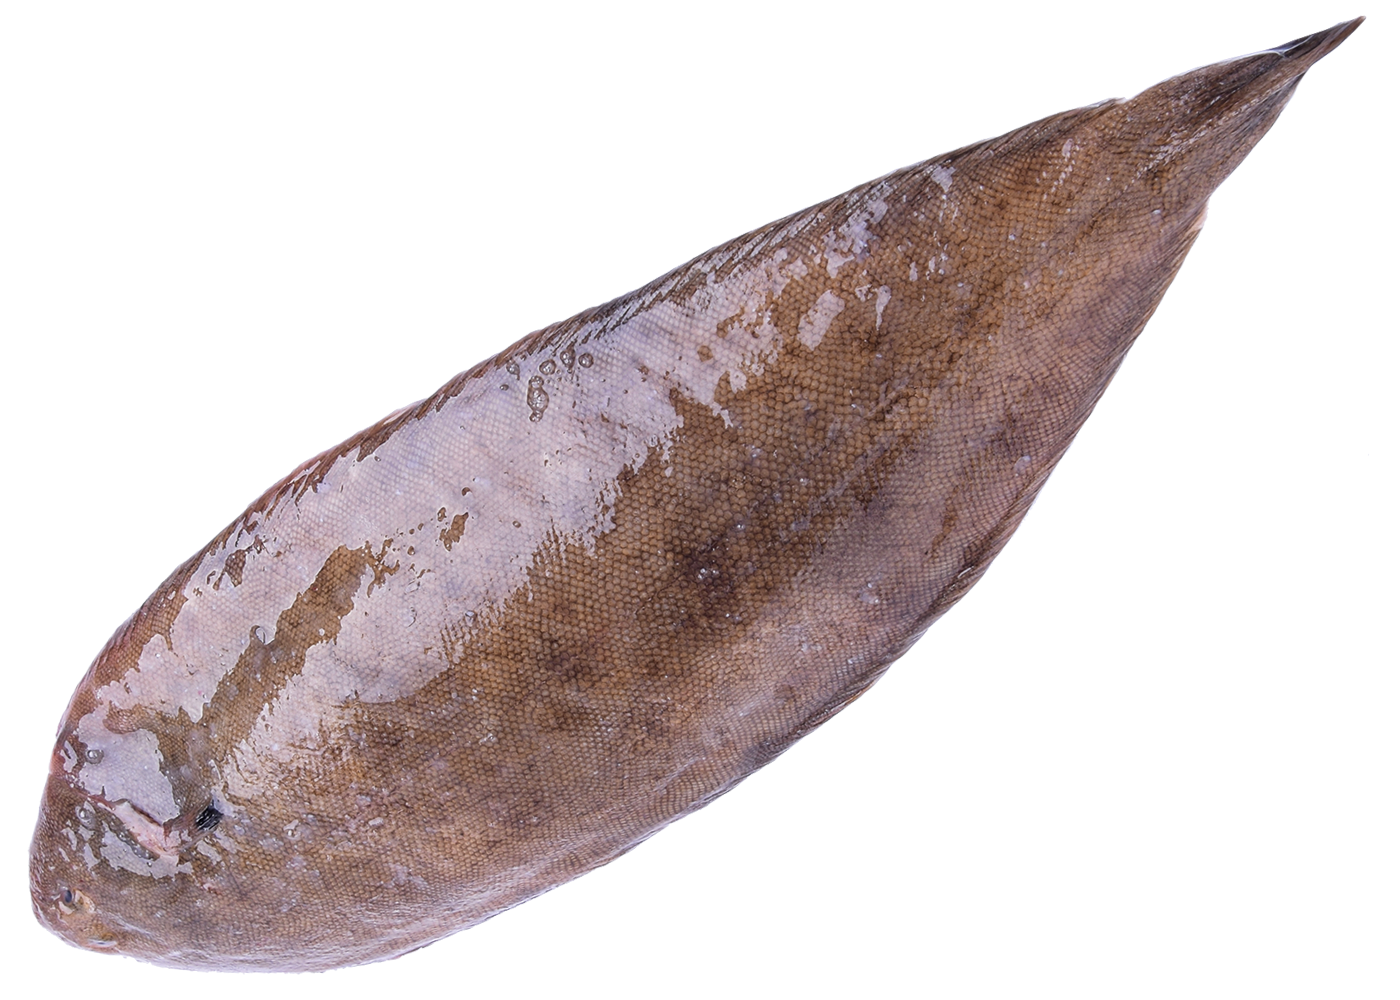 Productafbeelding DOVER SOLE WITH SKIN FRESH SIZE 100GR APPROX